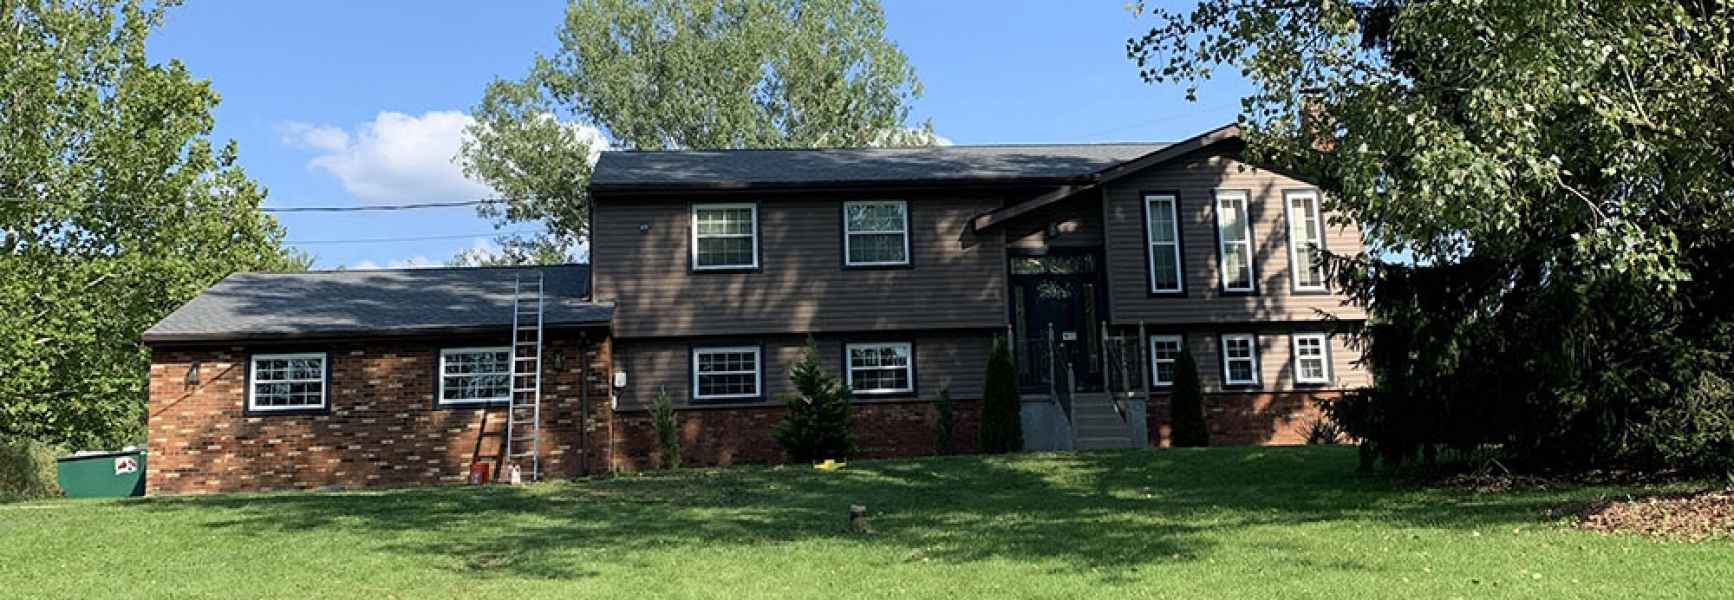 new roof cranberry township